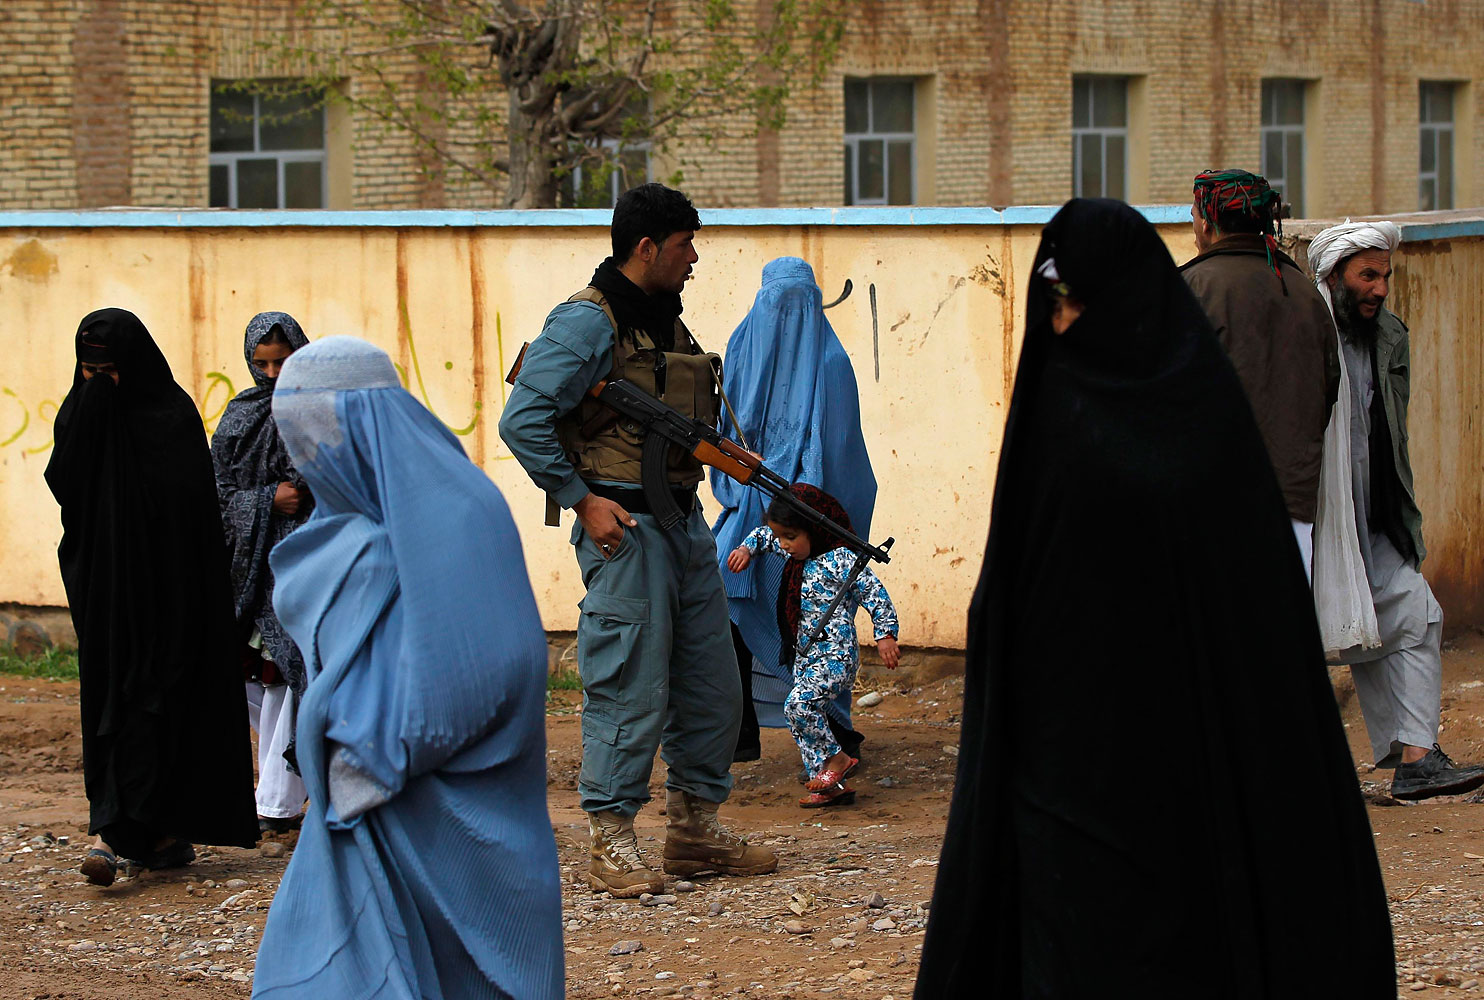 Afghan women arrive to vote at a polling station in Adraskan district, Herat province.